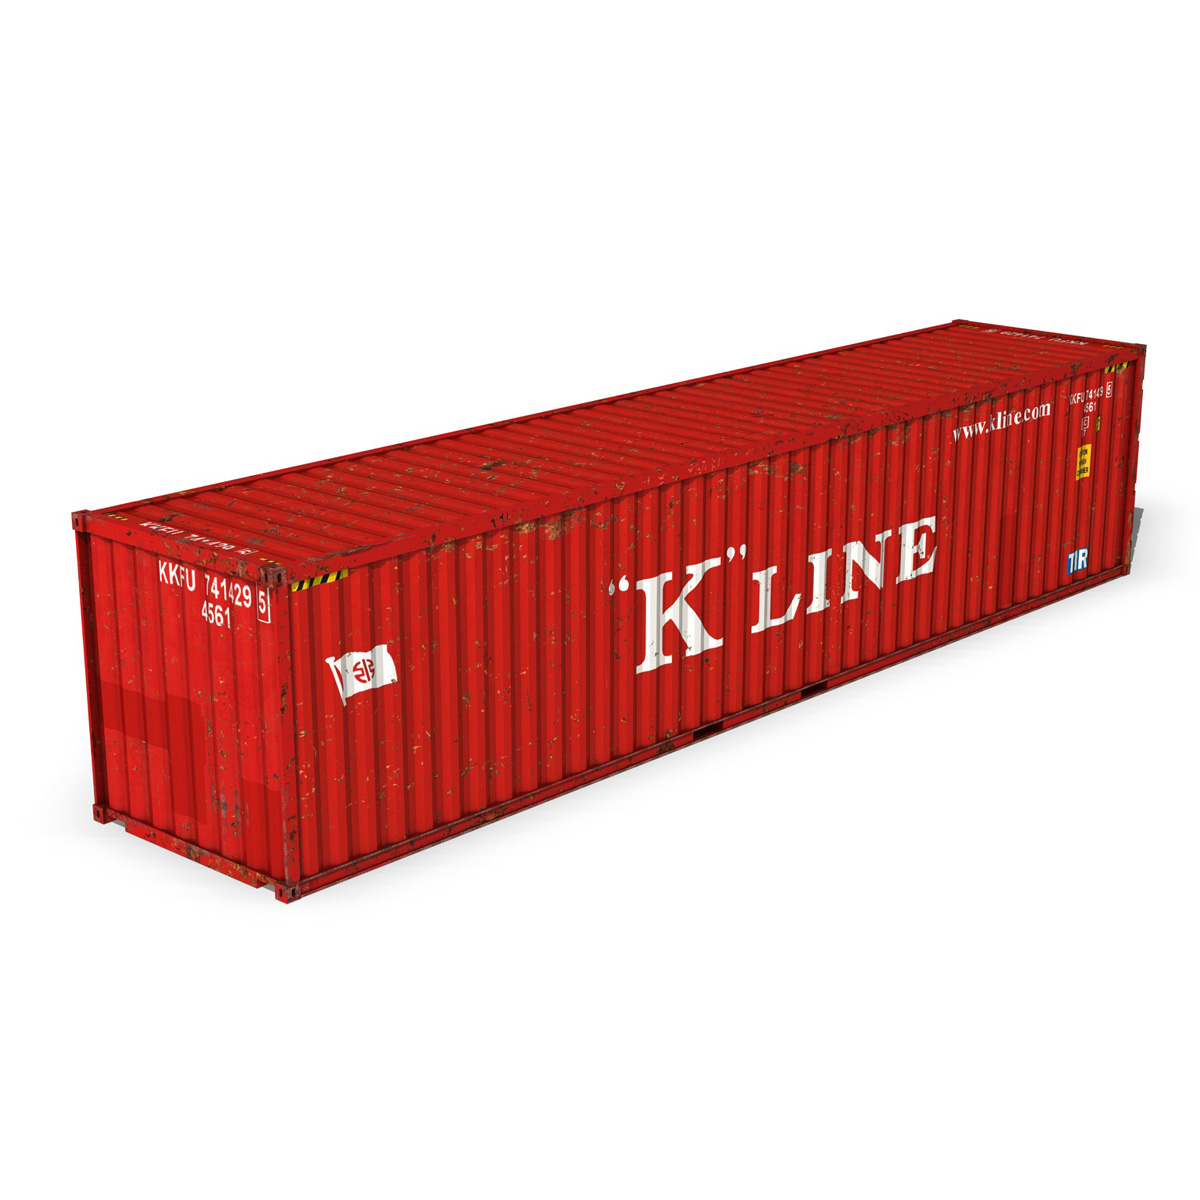 40ft shipping container – k line 3d model 3ds fbx lwo lw lws obj c4d 265120